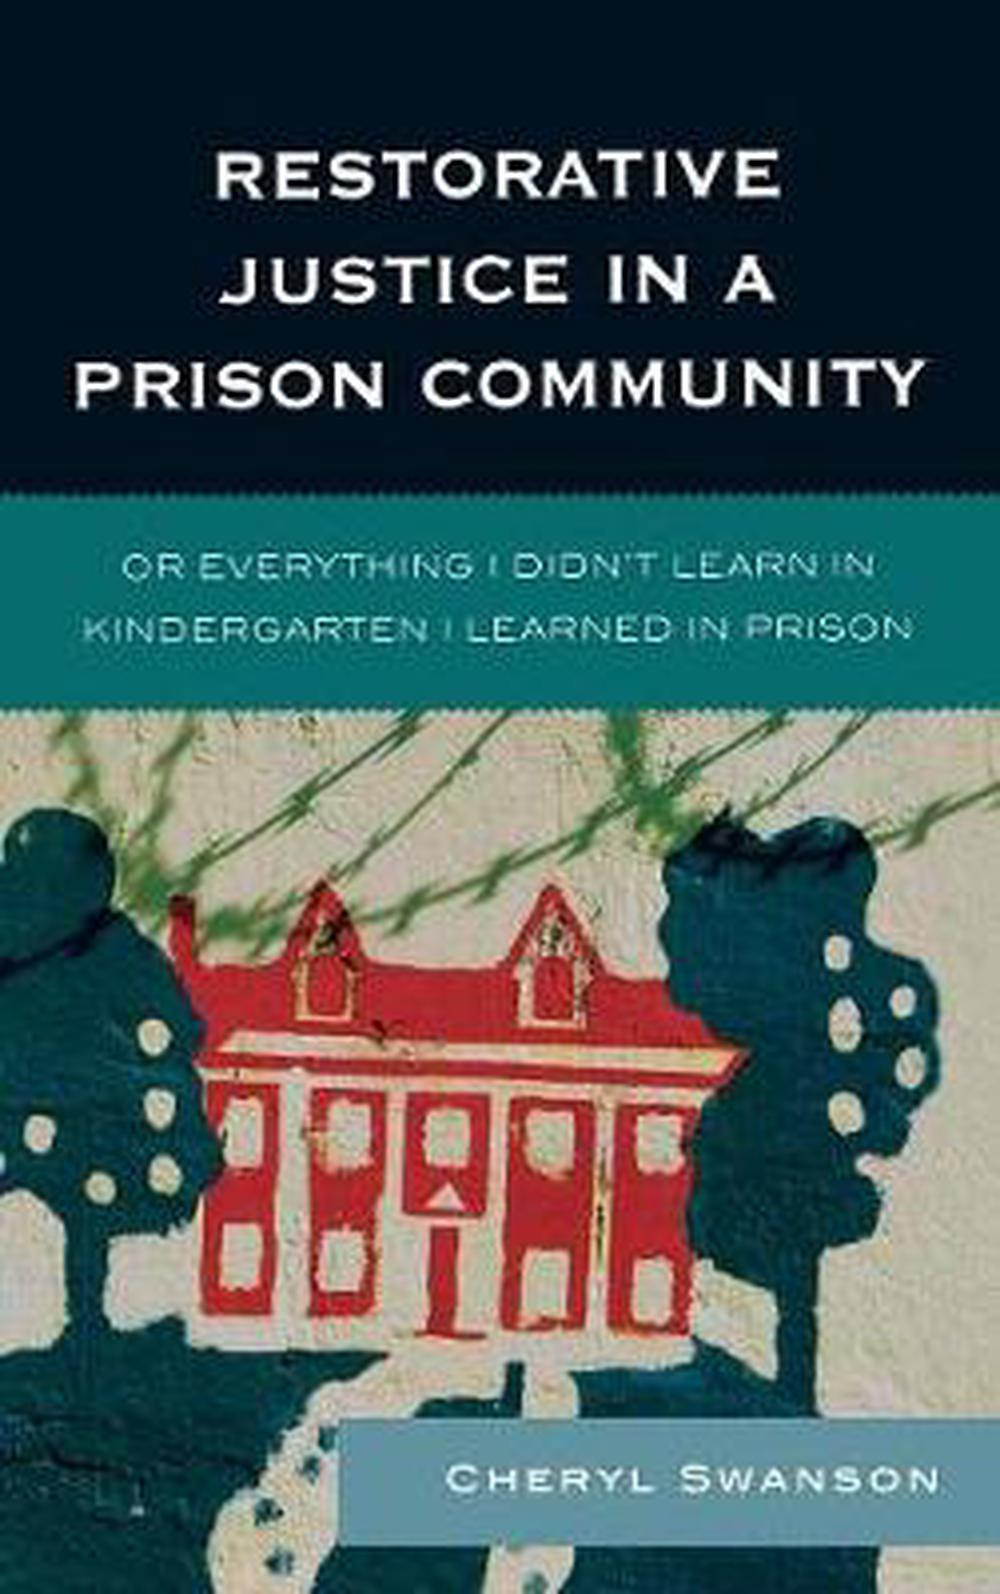 restorative justice in the prison setting This week on the truth for teachers podcast, i talked to educators about the school-to-prison pipeline and how restorative justice in  learning setting.